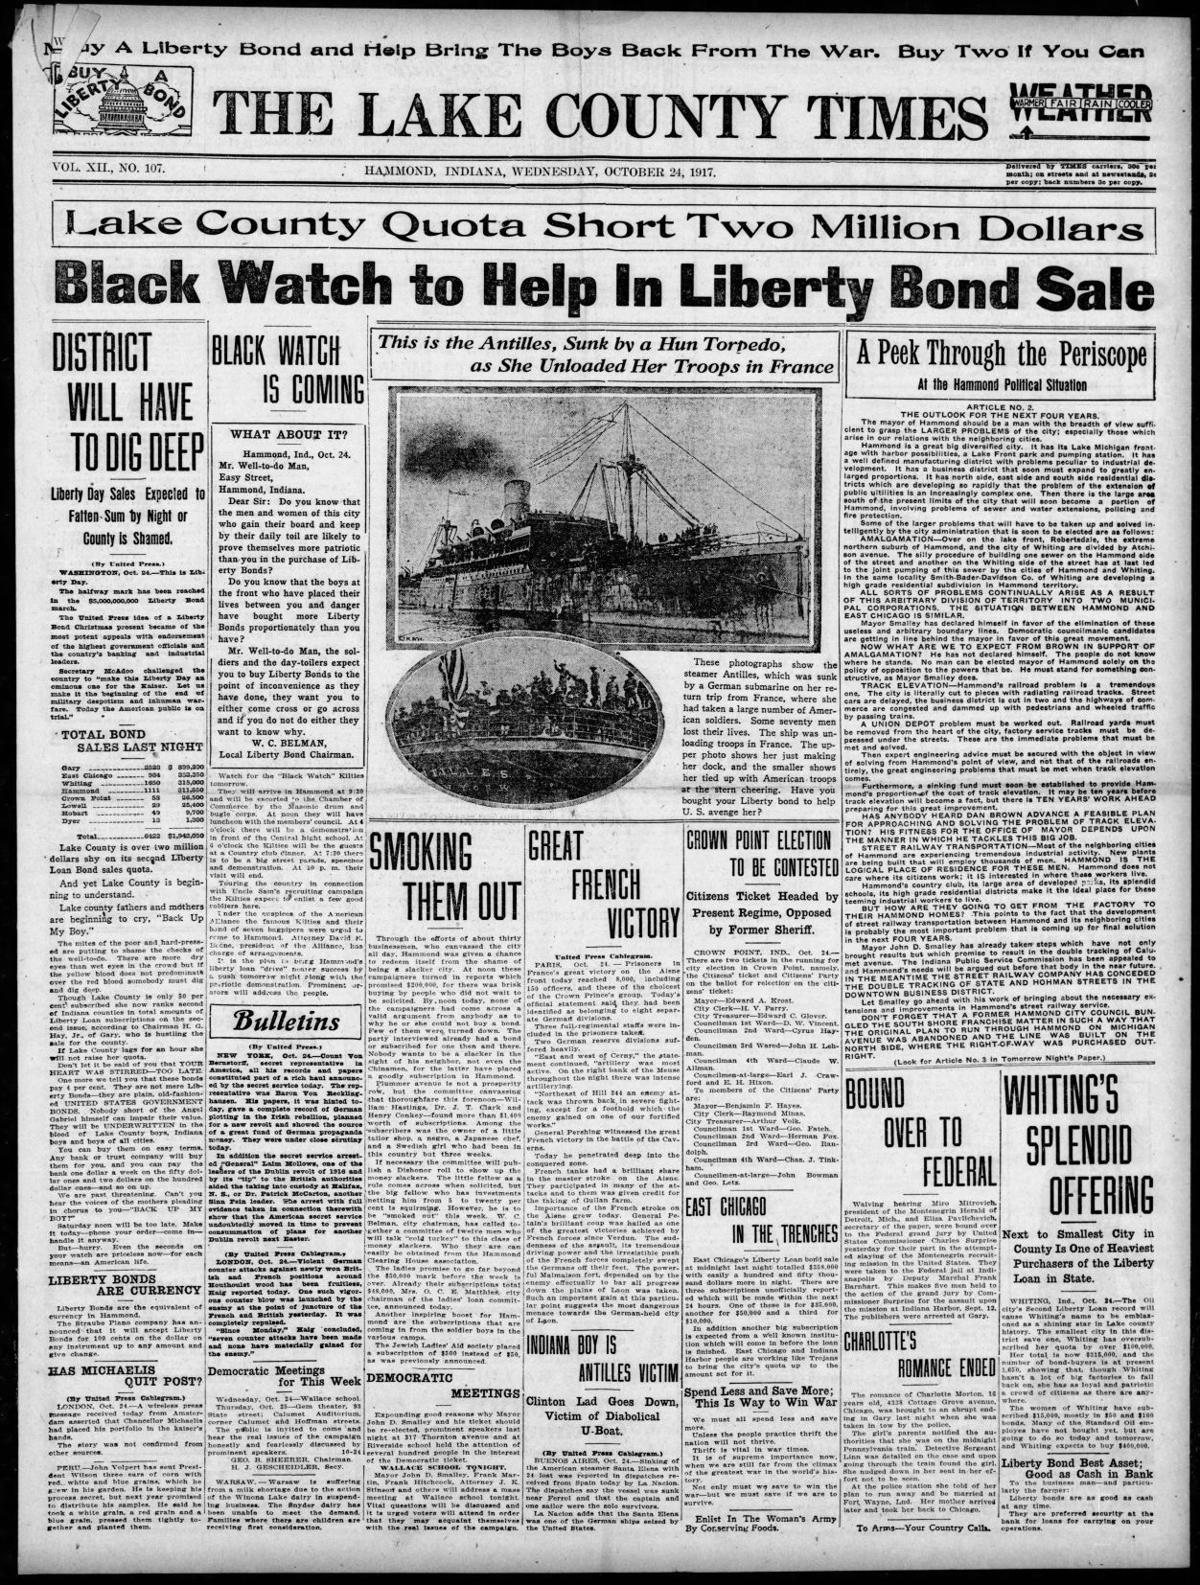 Oct. 24, 1917: Black Watch To Help In Liberty Bond Sale